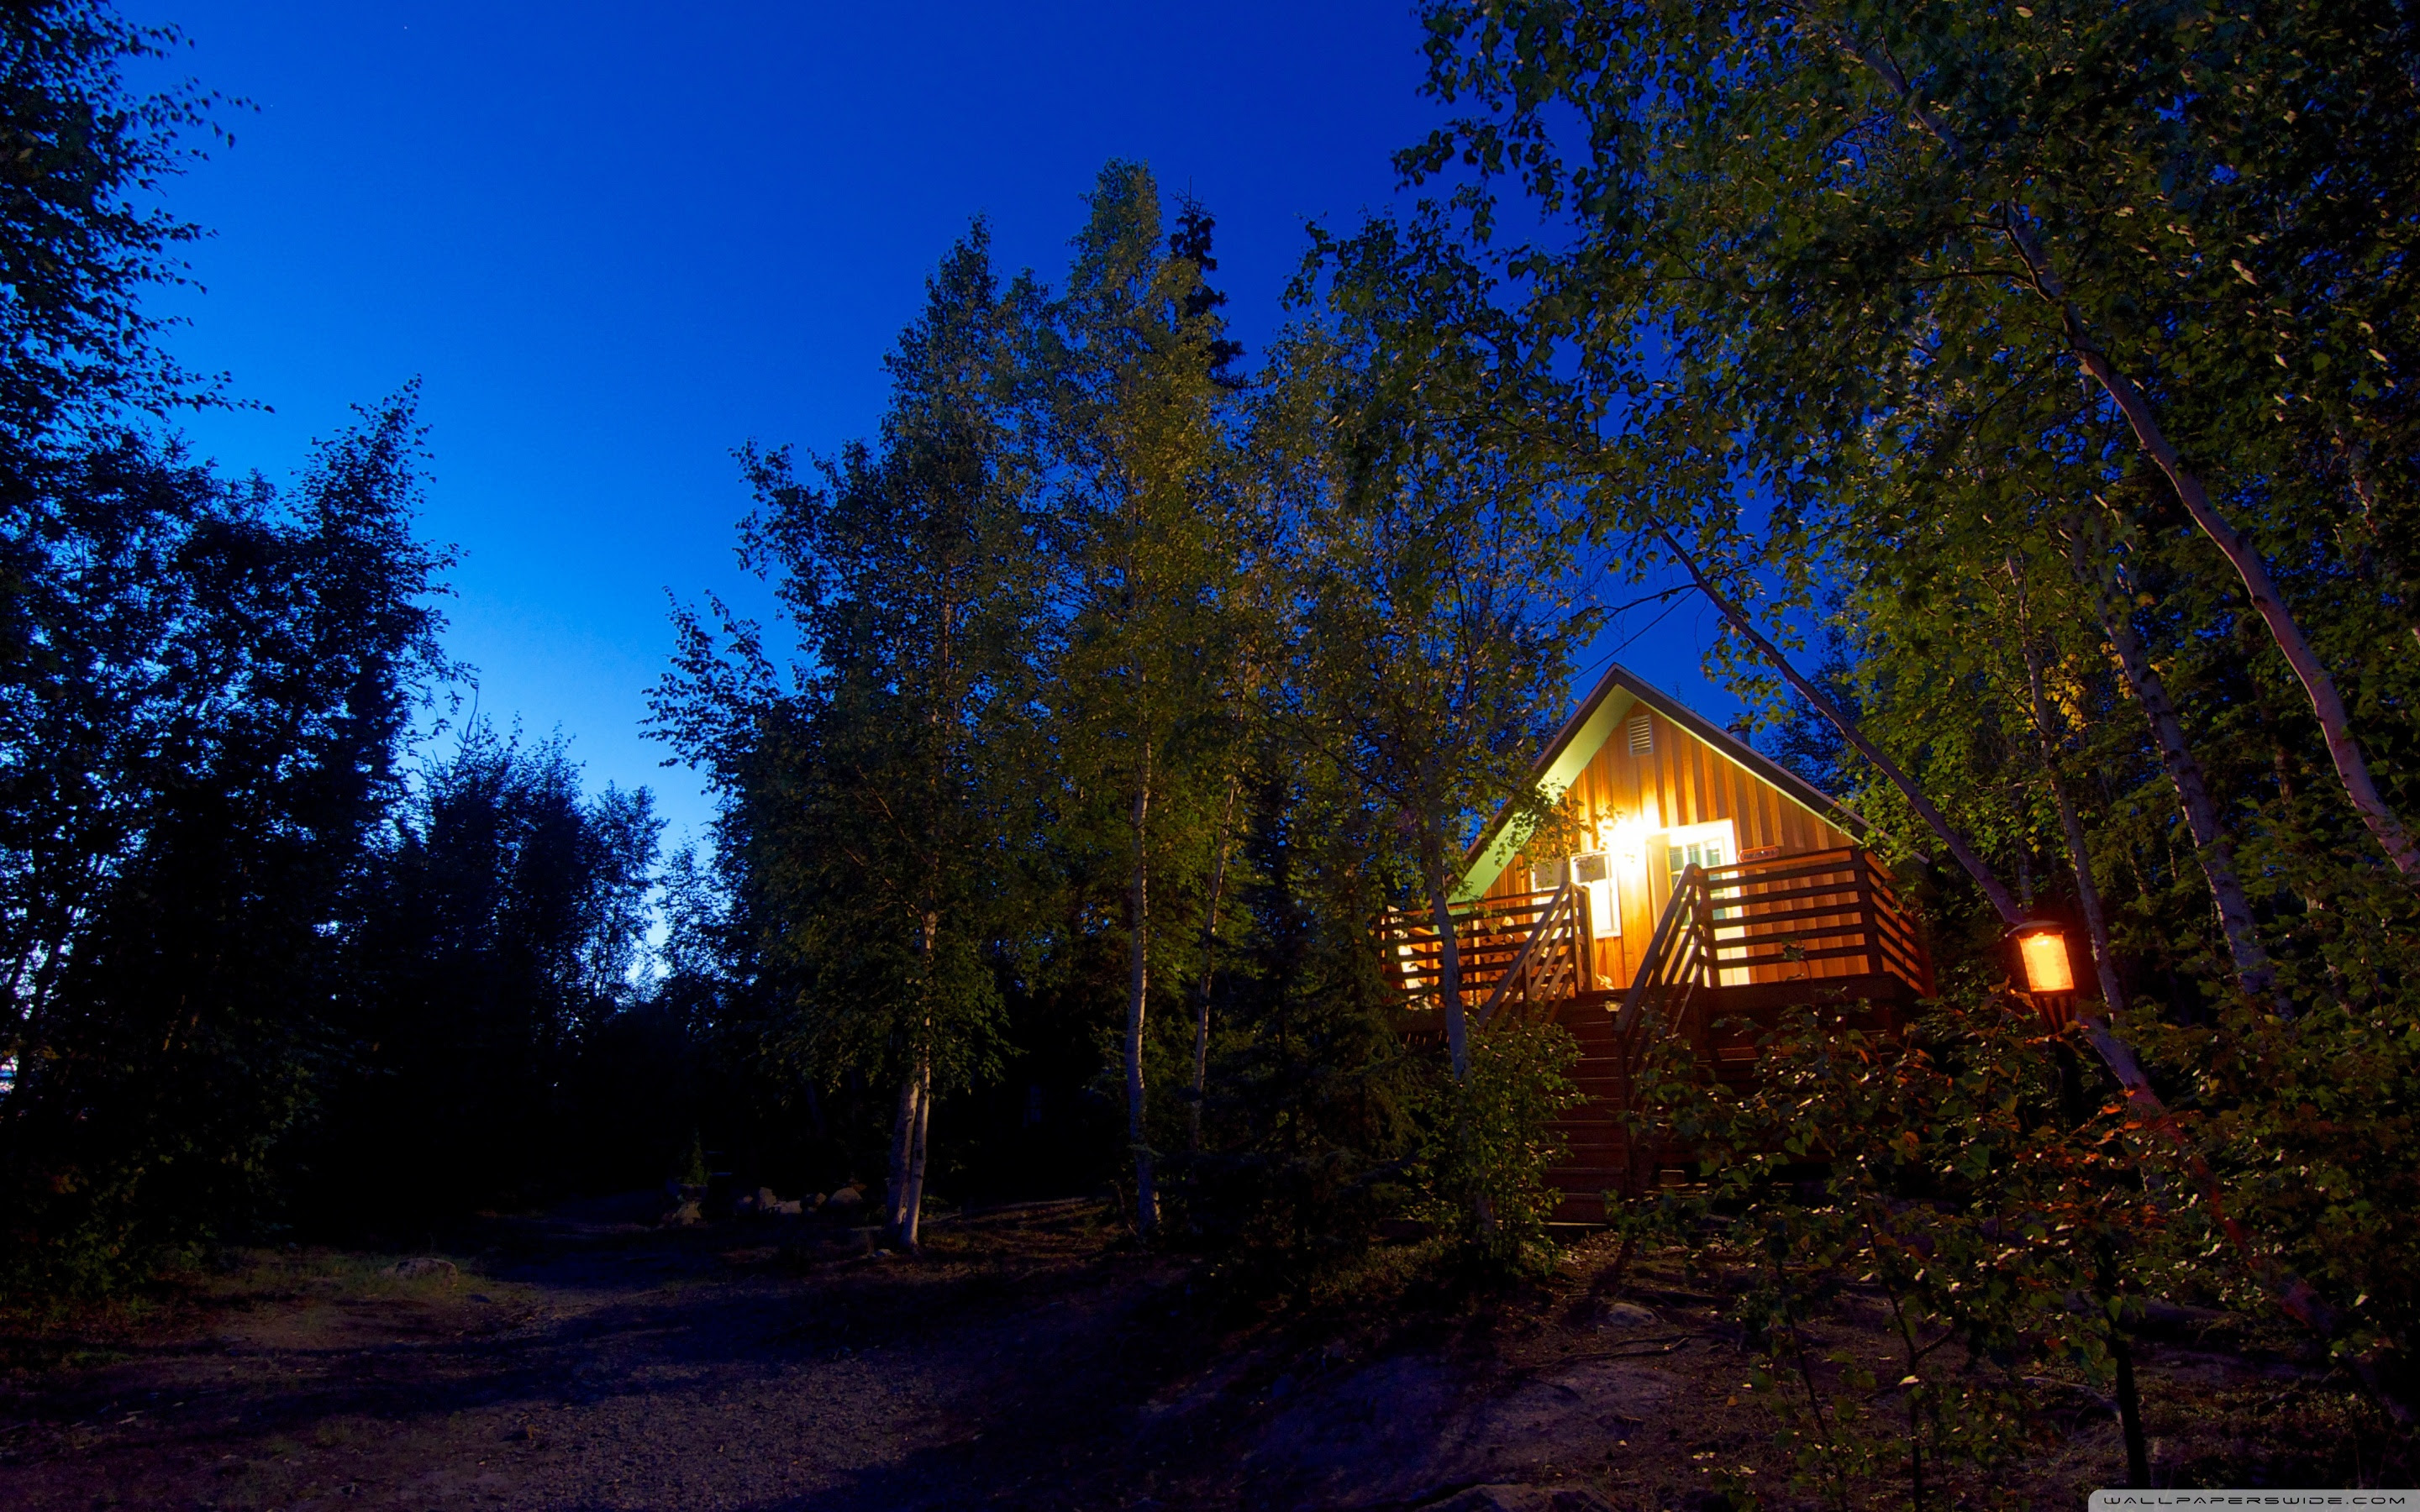 Cabin In The Woods Night Ultra Hd Desktop Background Wallpaper For